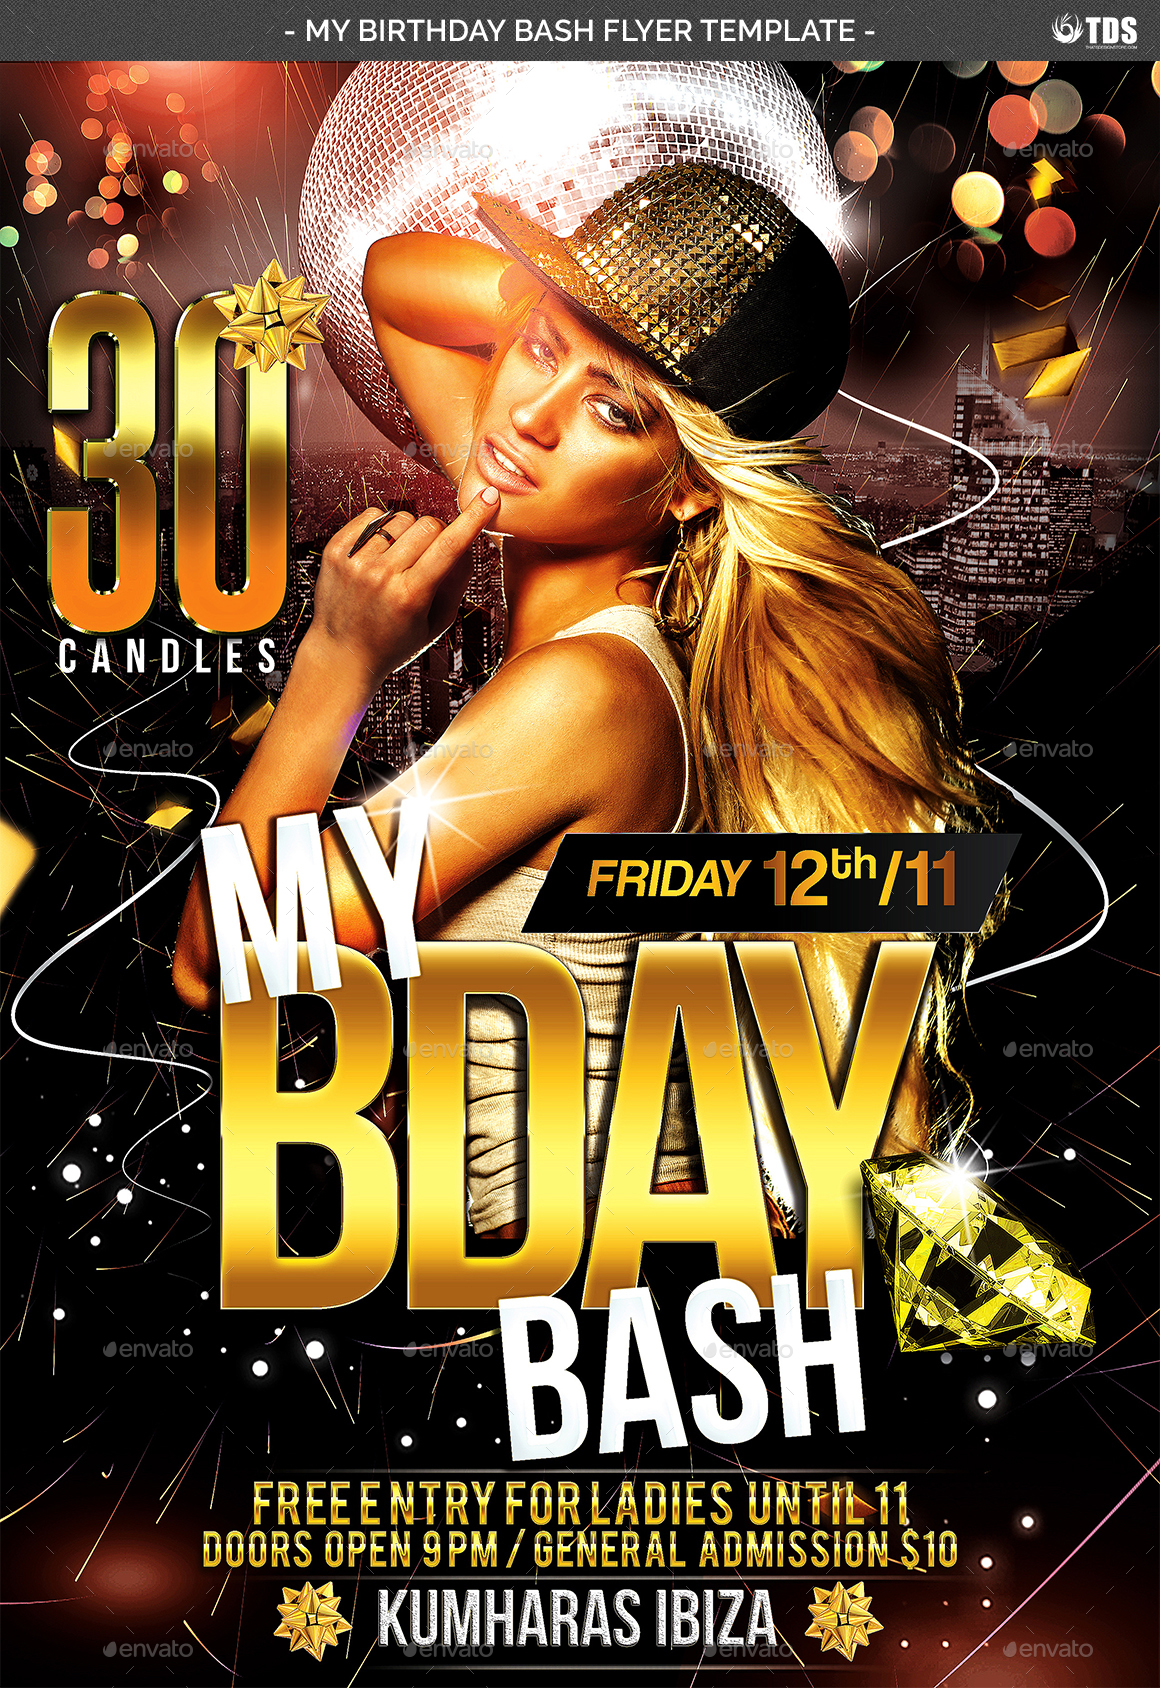 my birthday bash flyer template by noryach